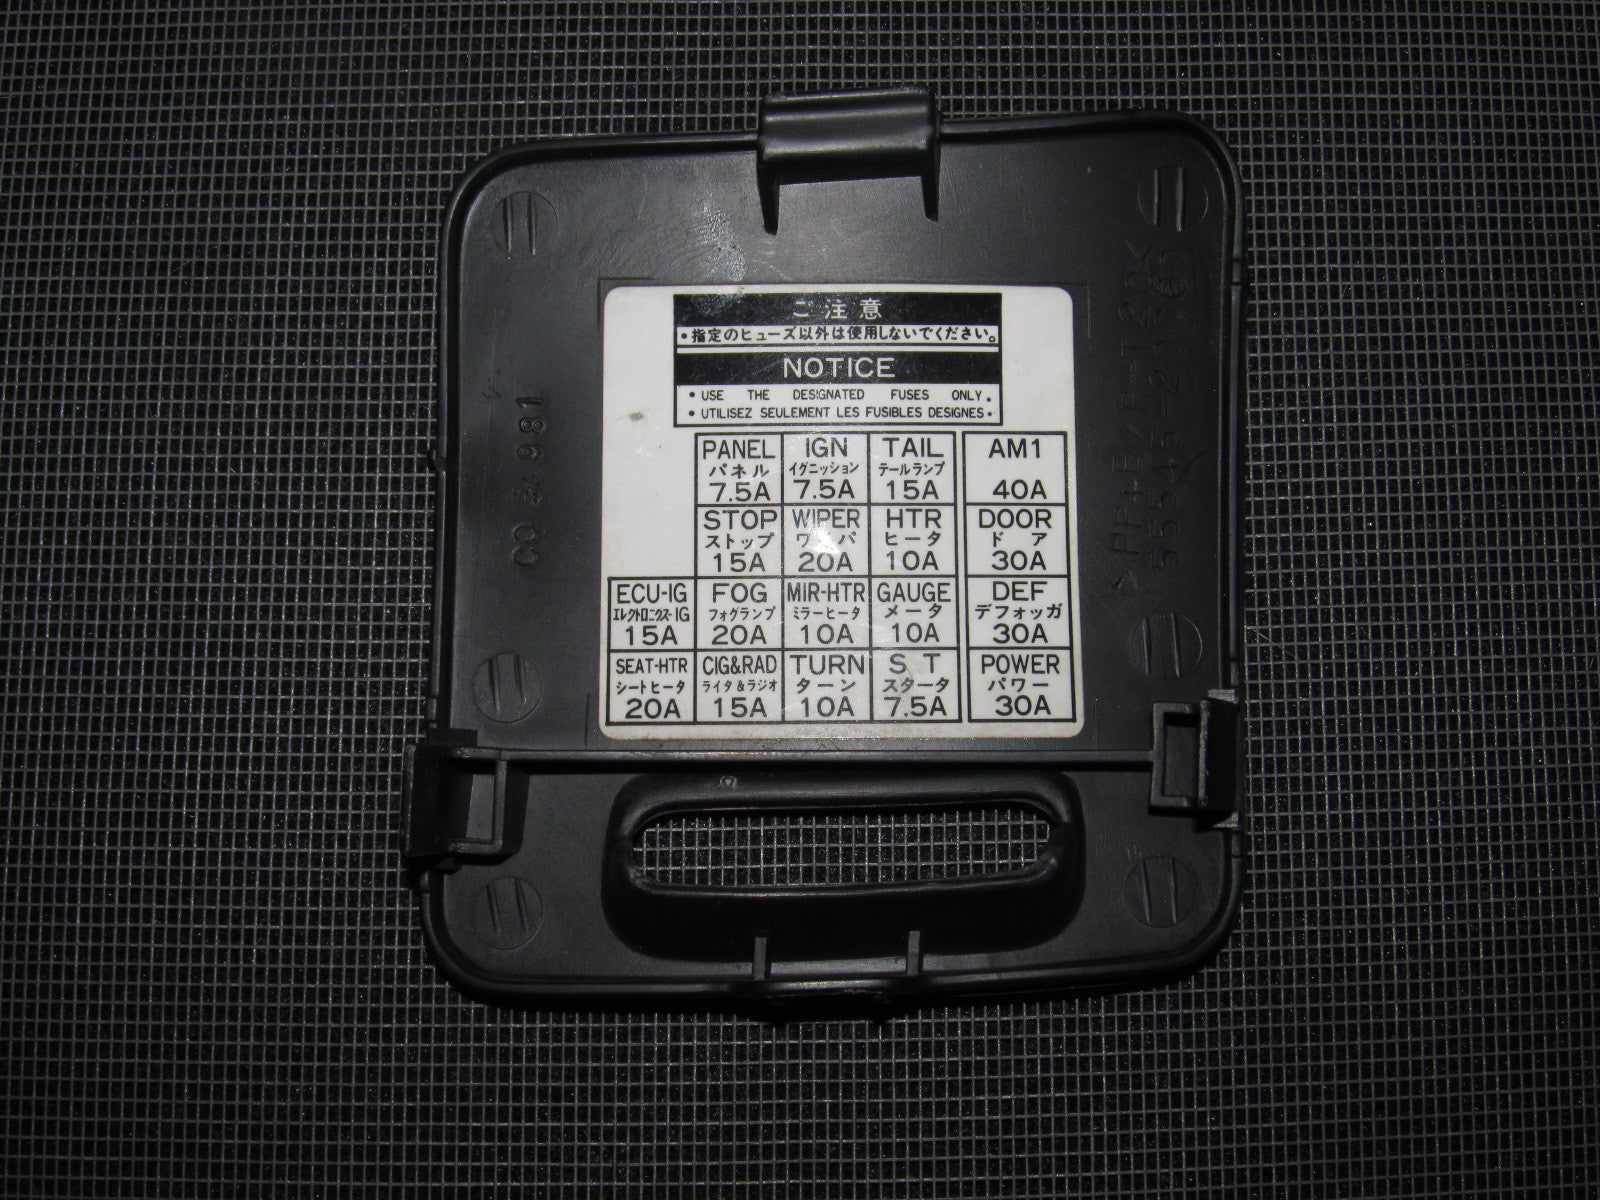 1997 Toyota Celica Fuse Box Explained Wiring Diagrams Buick Park Avenue 94 95 96 97 98 99 Oem Interior Cover